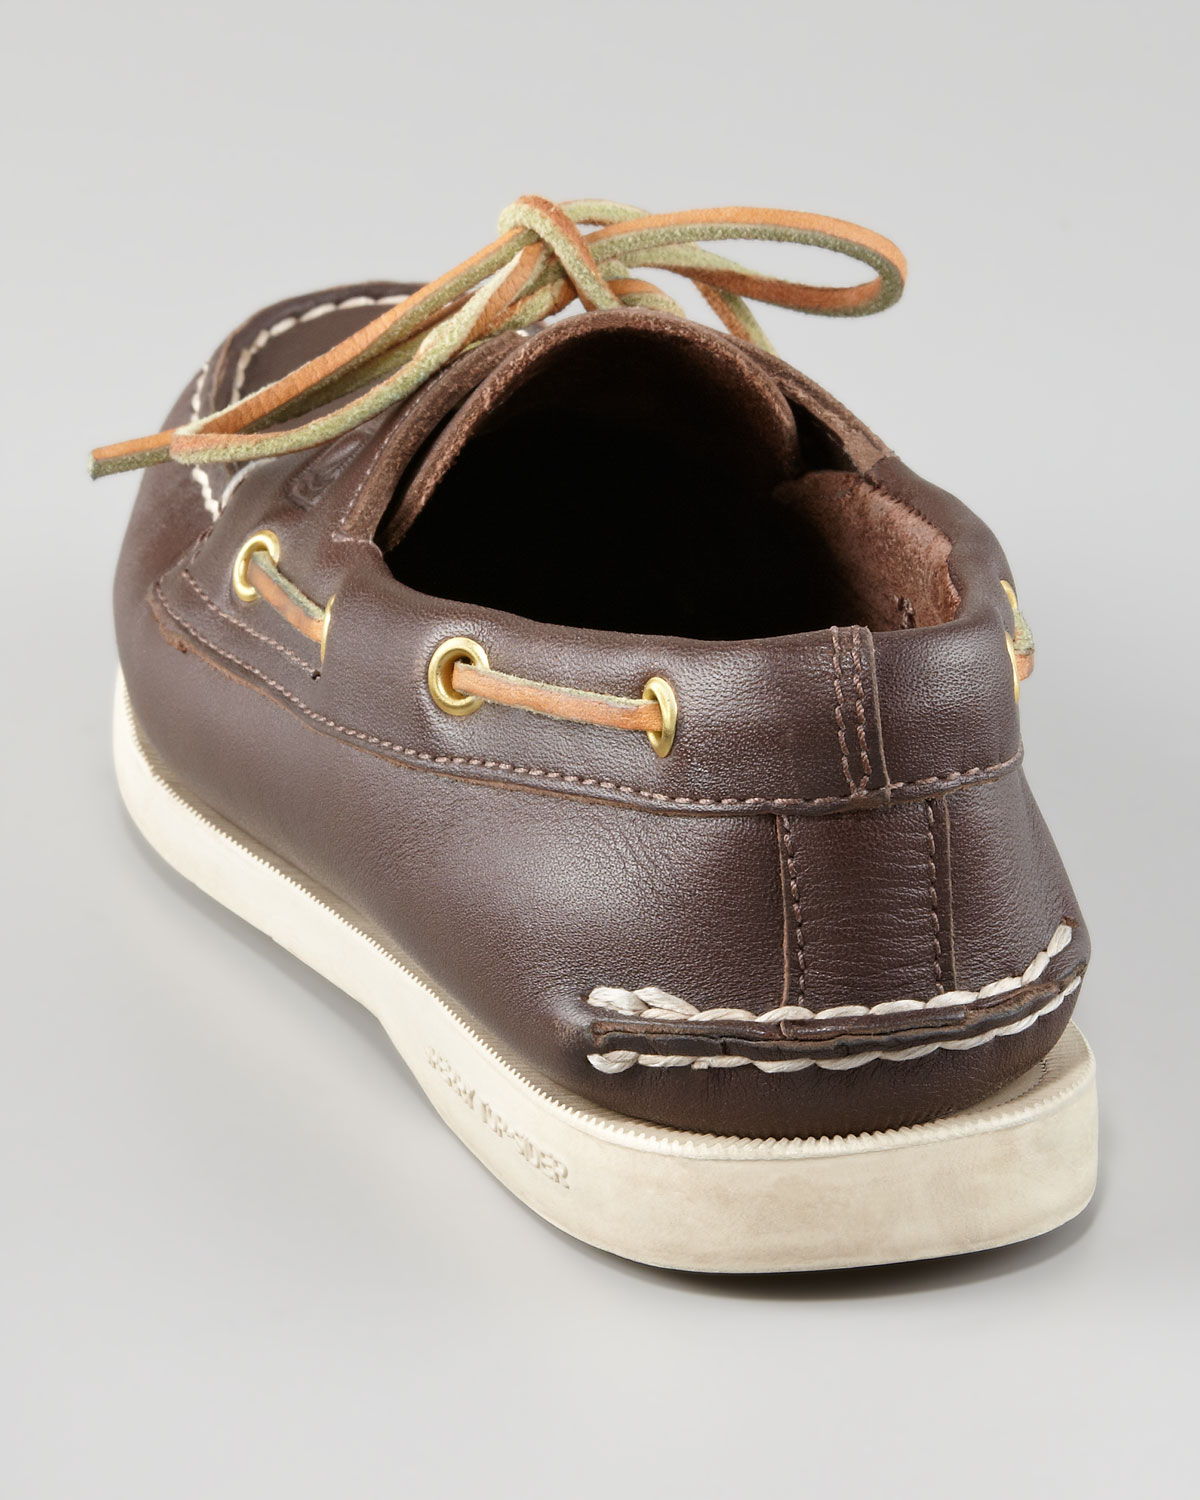 Sperry top-sider Authentic Nubuck Boat Shoe in Brown ...